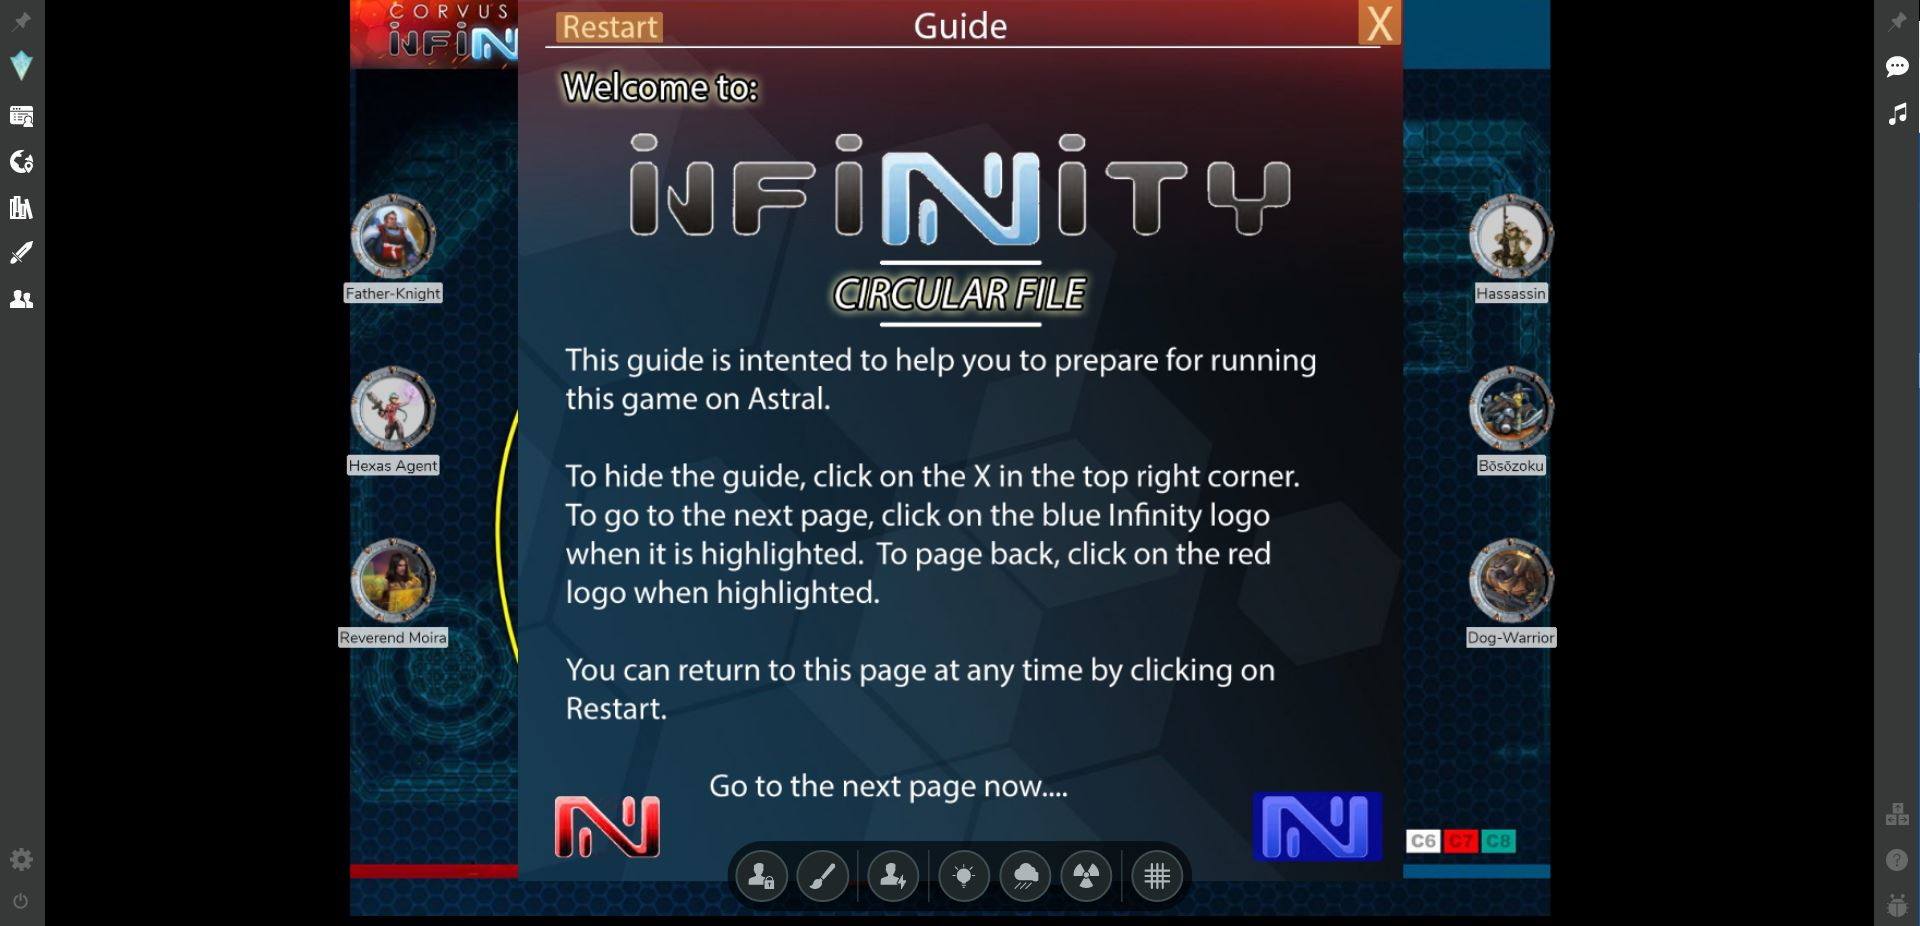 Infinity-quickstart-screencap2.JPG